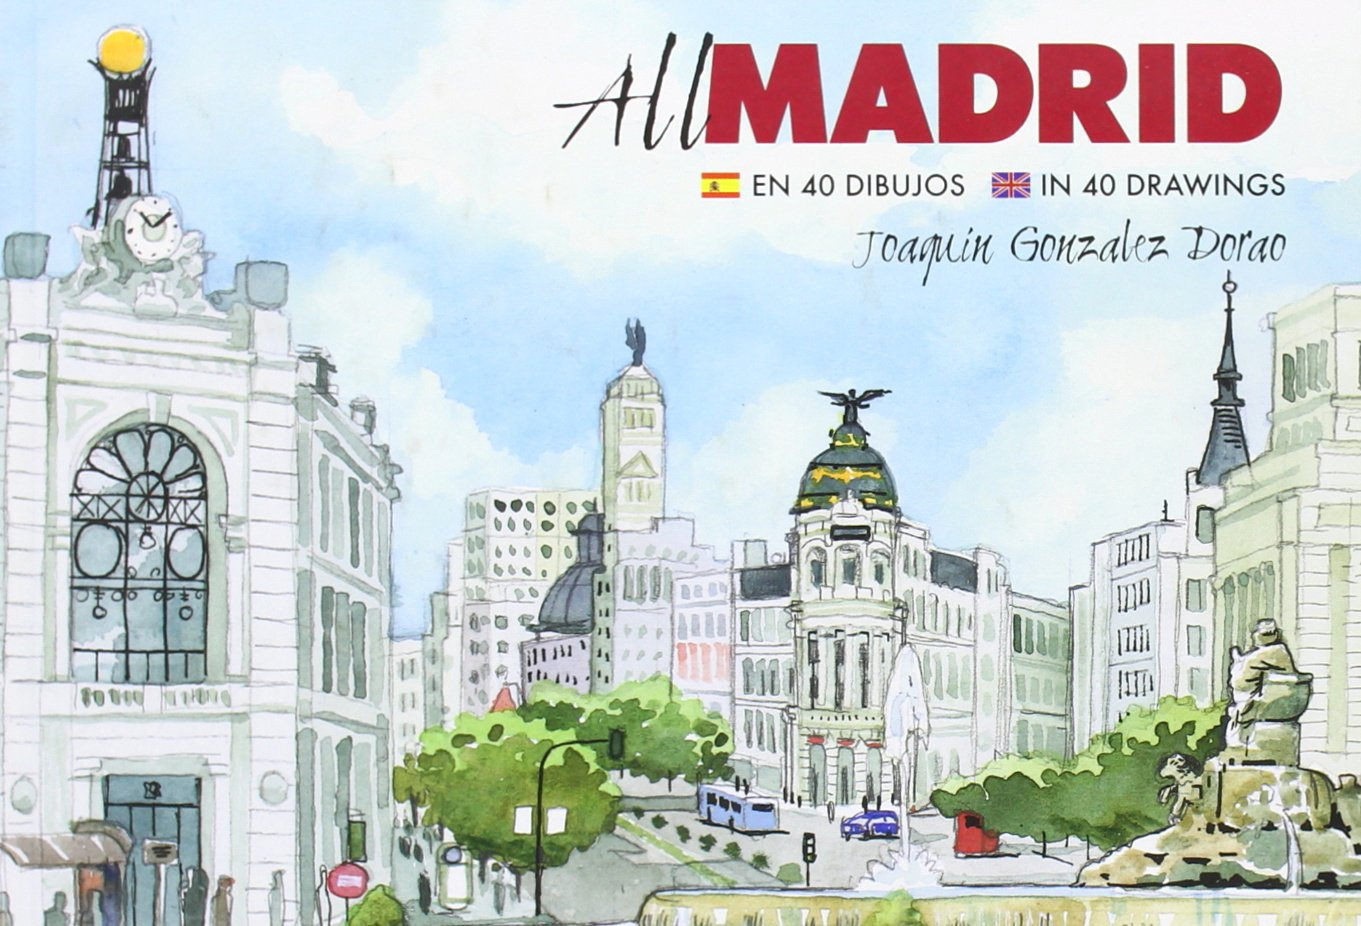 All Madrid: Amazon.es: Joaquín González Dorao: Libros